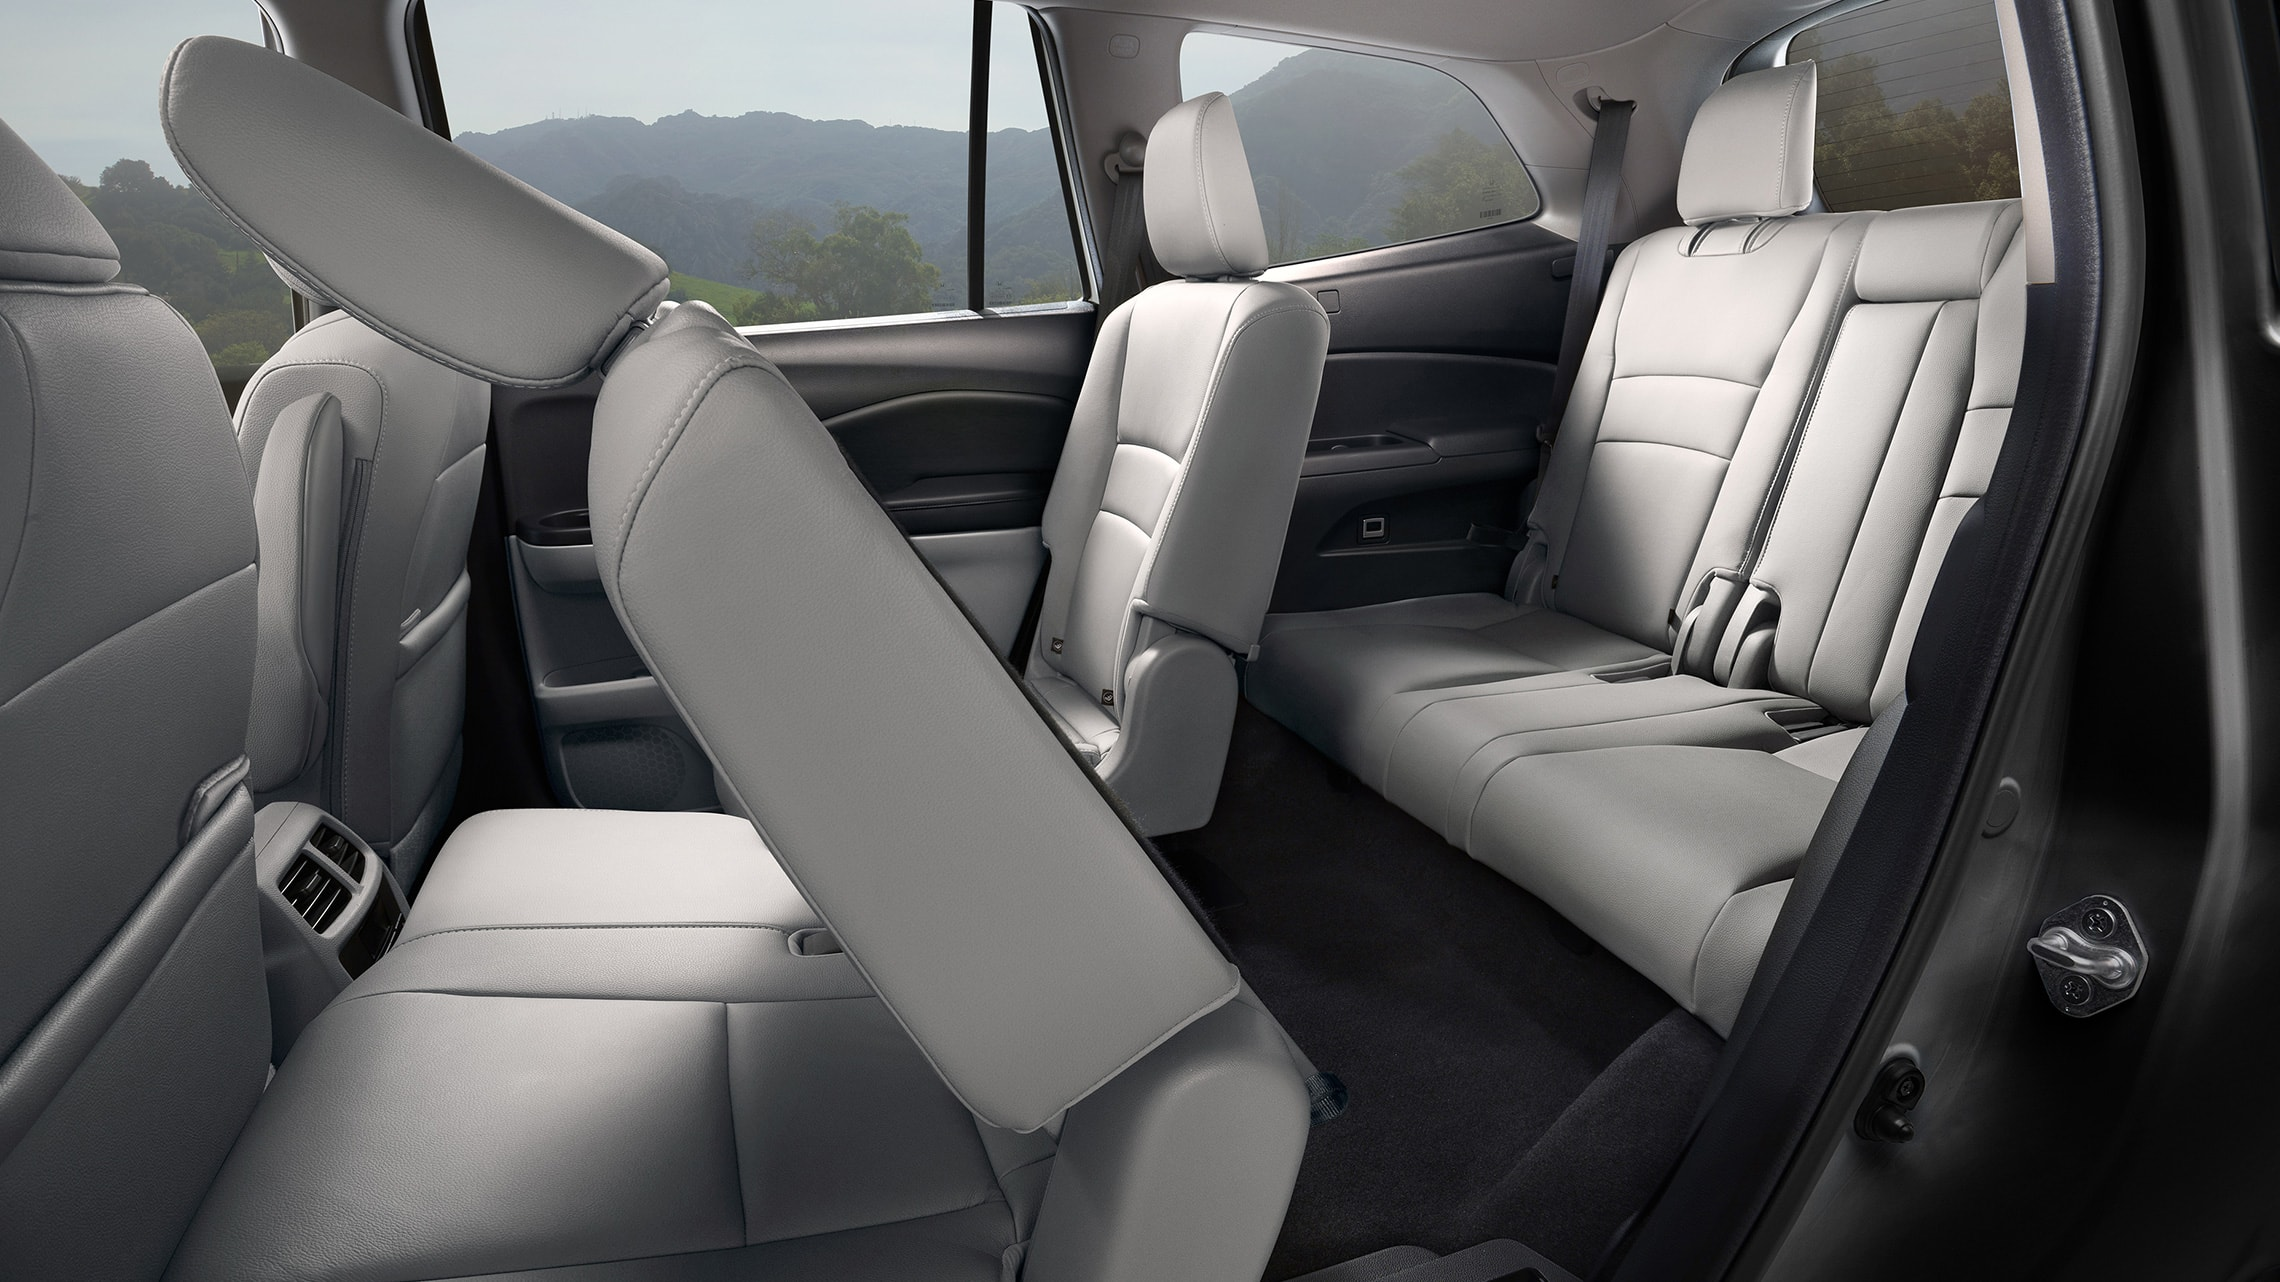 2nd-row captain's chair detail shown folded in 2020 Honda Pilot Elite with Gray Leather interior.